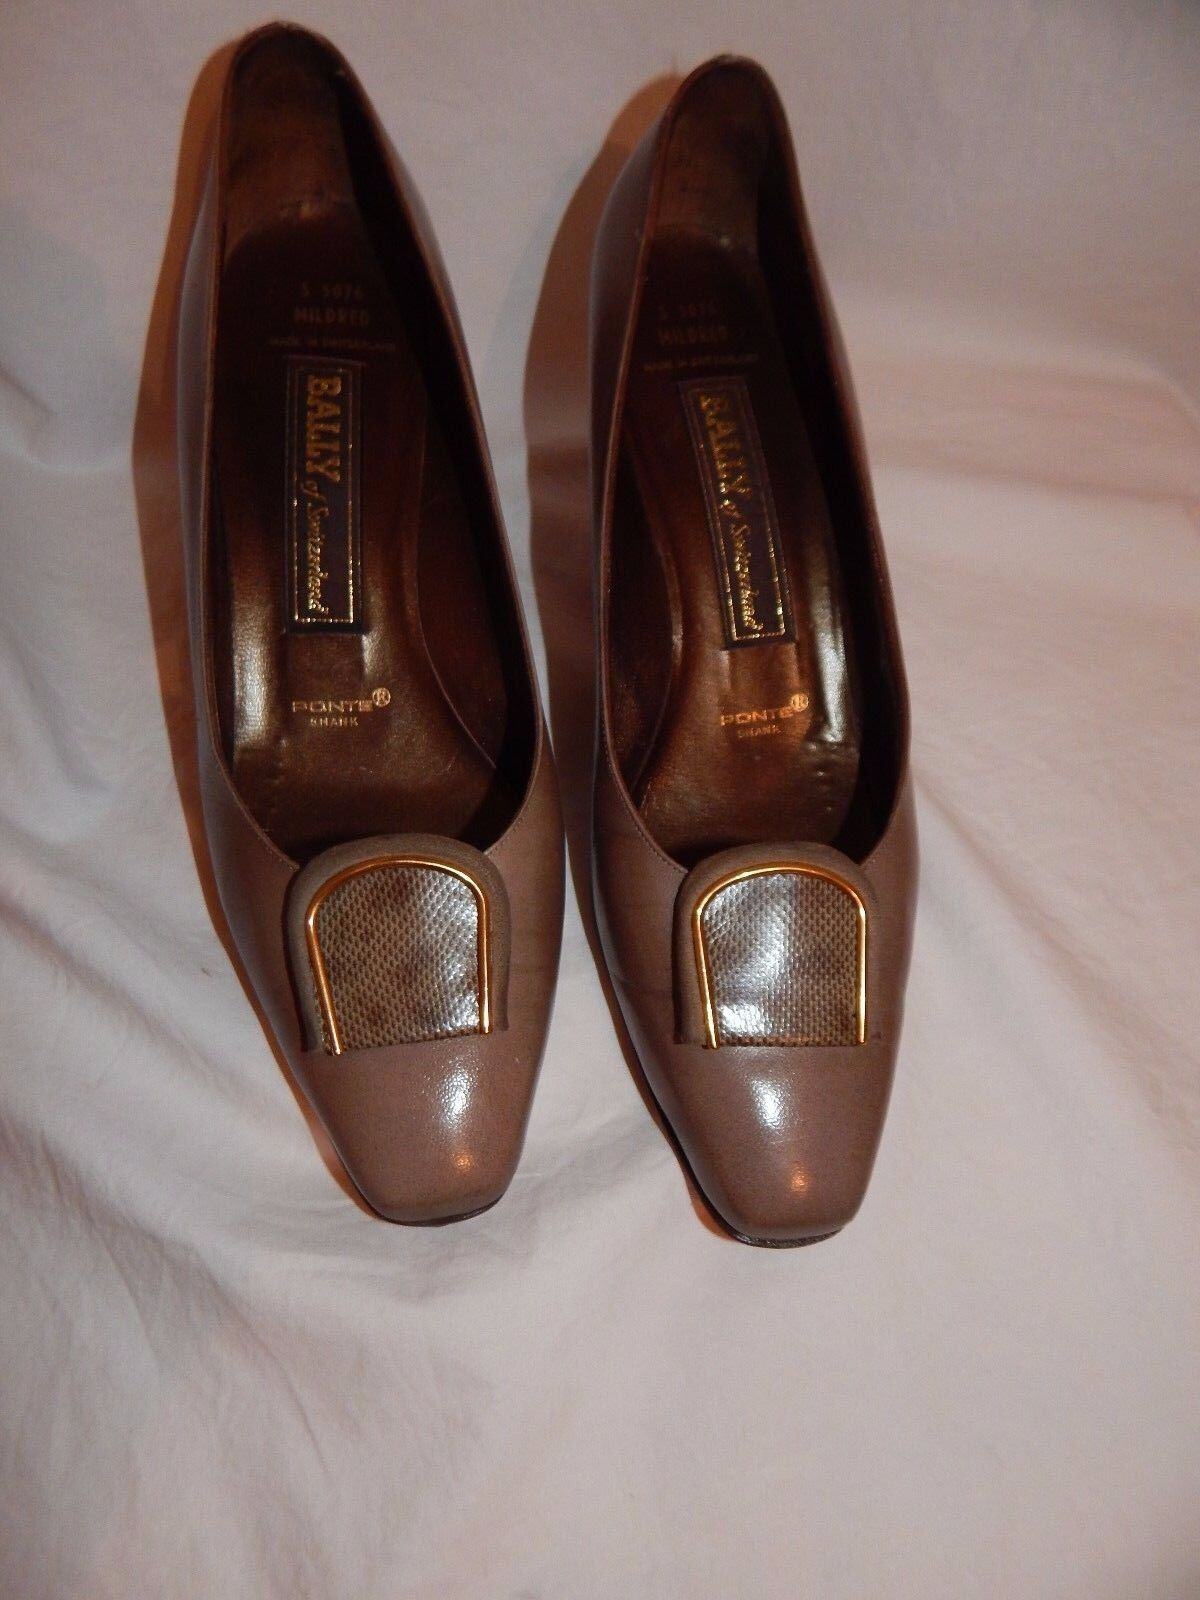 Bally of Switzerland Mildred Vintage   Vintage Pelle Classic  Pumps Size 9 M S5076 2b2bfe